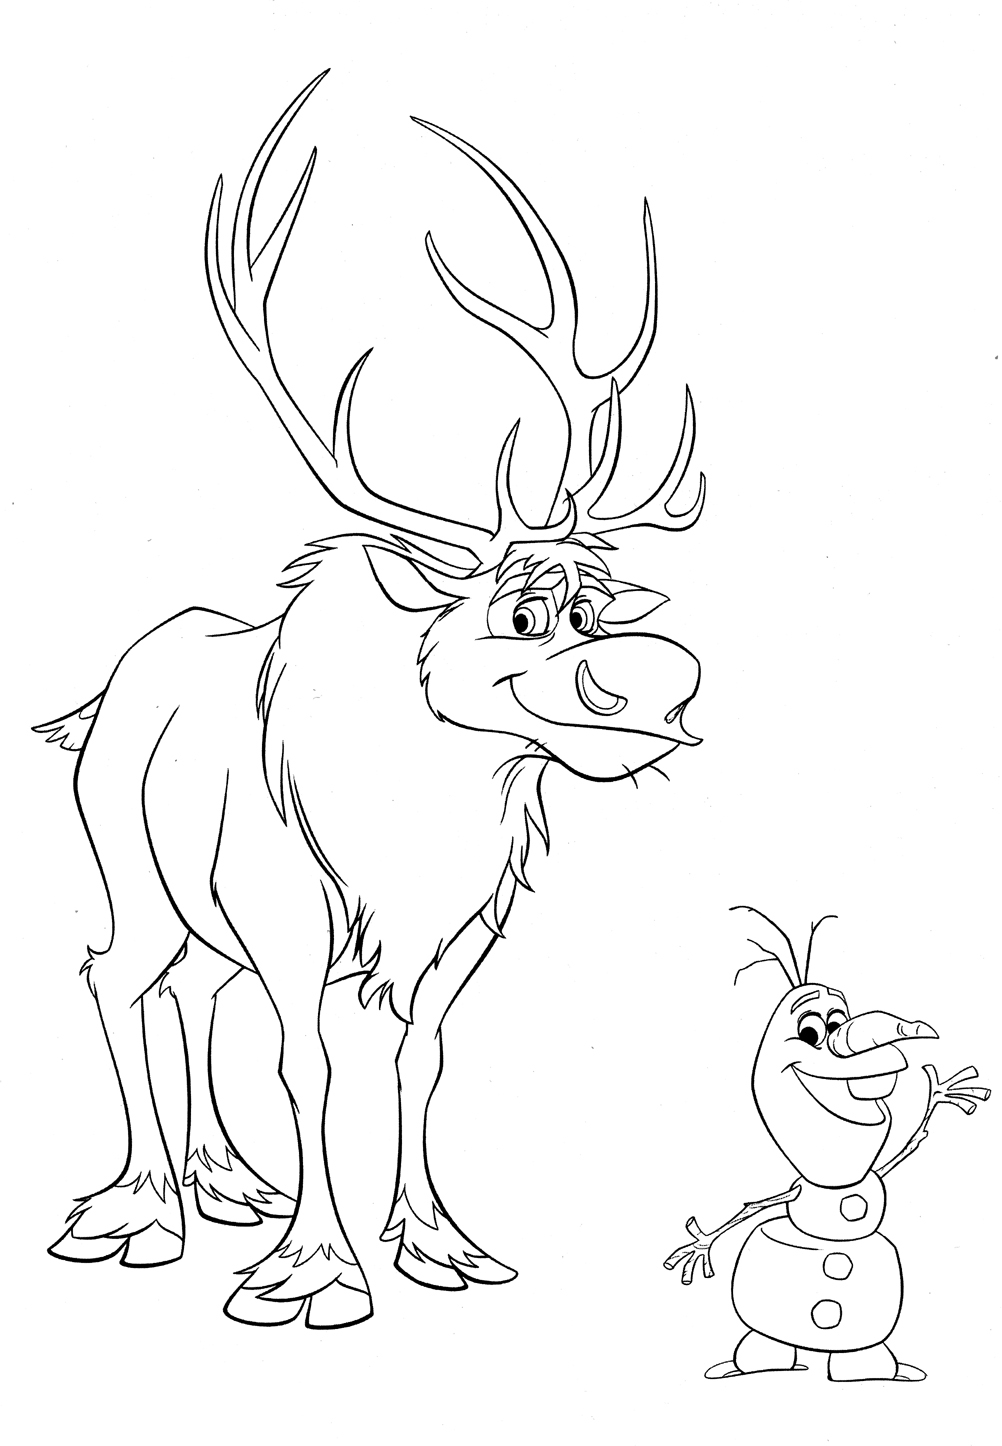 Coloring Pages Of Disney Frozen : Free coloring pages of olaf and wite